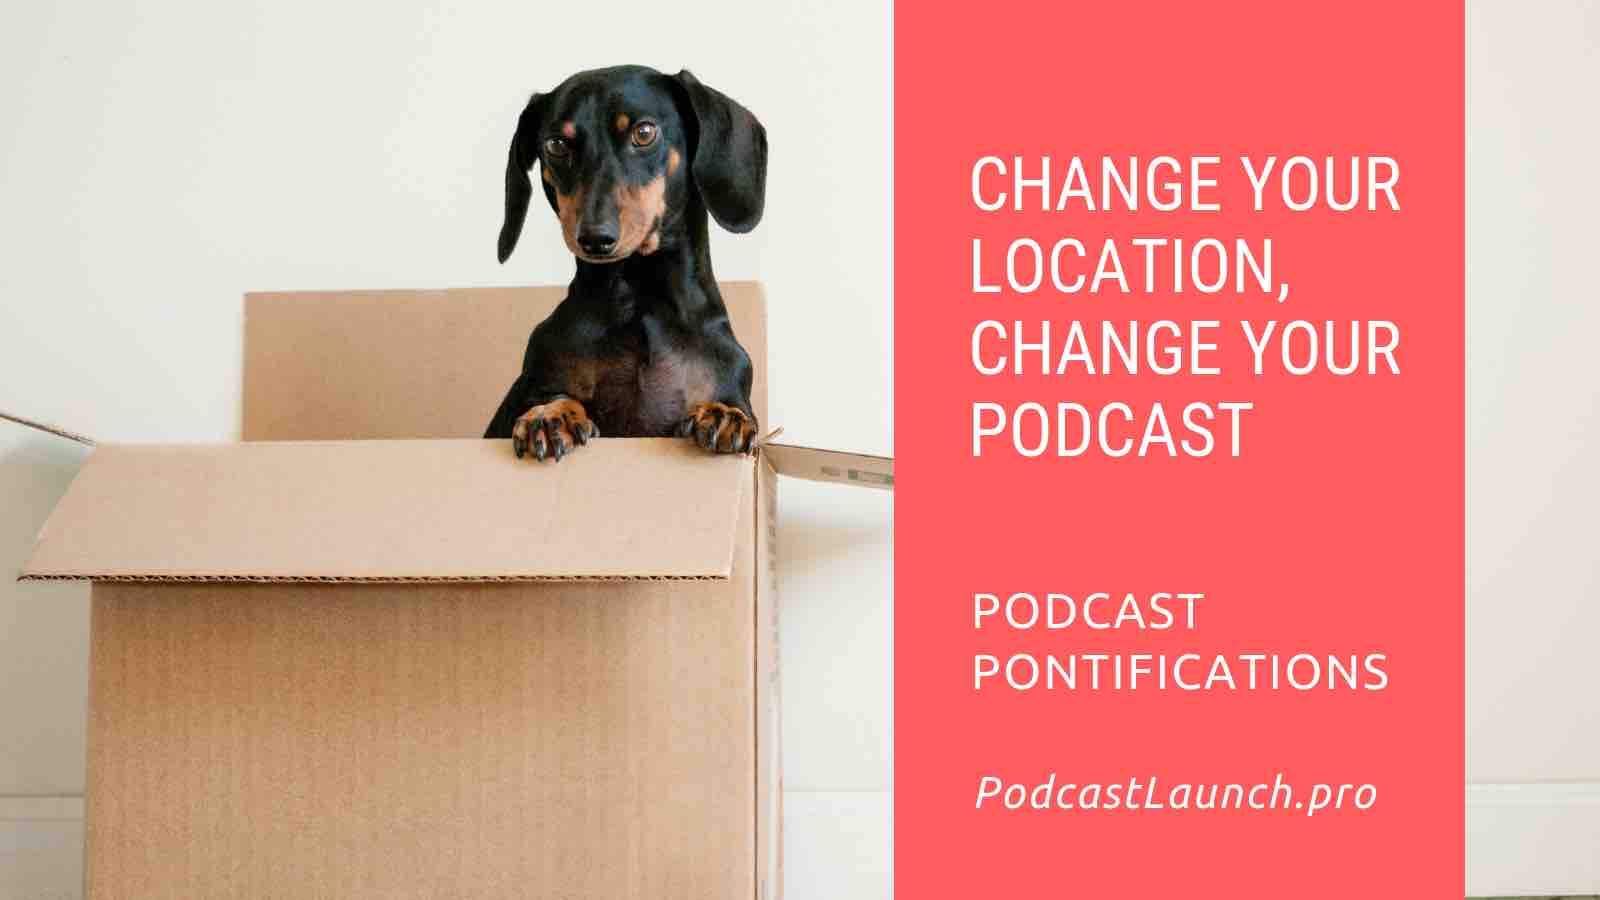 Change Your Location, Change Your Podcast